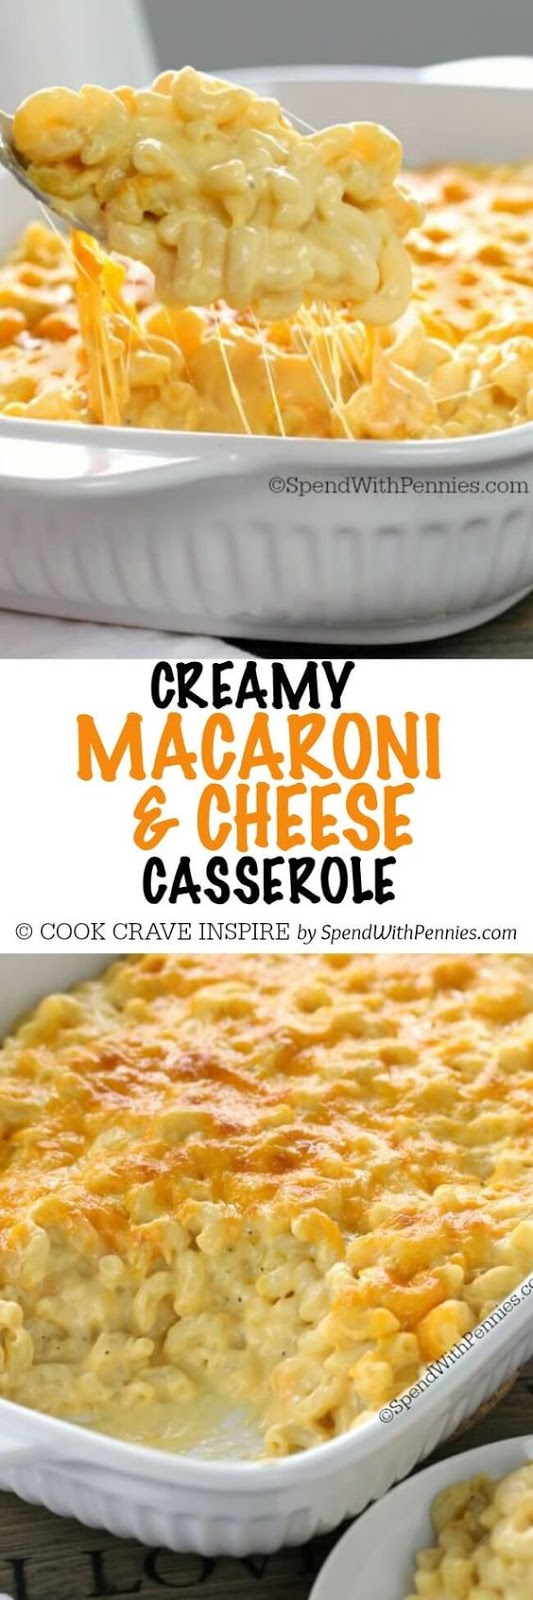 HOMEMADE MAC AND CHEESE CASSEROLE #HOMEMADE #MAC #CHEESE #CASSEROLE  #HEALTHYFOOD #EASYRECIPES #DINNER #LAUCH #DELICIOUS #EASY #HOLIDAYS #RECIPE #DESSERTS #SPECIALDIET #WORLDCUISINE #CAKE #APPETIZERS #HEALTHYRECIPES #DRINKS #COOKINGMETHOD #ITALIANRECIPES #MEAT #VEGANRECIPES #COOKIES #PASTA #FRUIT #SALAD #SOUPAPPETIZERS #NONALCOHOLICDRINKS #MEALPLANNING #VEGETABLES #SOUP #PASTRY #CHOCOLATE #DAIRY #ALCOHOLICDRINKS #BULGURSALAD #BAKING #SNACKS #BEEFRECIPES #MEATAPPETIZERS #MEXICANRECIPES #BREAD #ASIANRECIPES #SEAFOODAPPETIZERS #MUFFINS #BREAKFASTANDBRUNCH #CONDIMENTS #CUPCAKES #CHEESE #CHICKENRECIPES #PIE #COFFEE #NOBAKEDESSERTS #HEALTHYSNACKS #SEAFOOD #GRAIN #LUNCHESDINNERS #MEXICAN #QUICKBREAD #LIQUOR